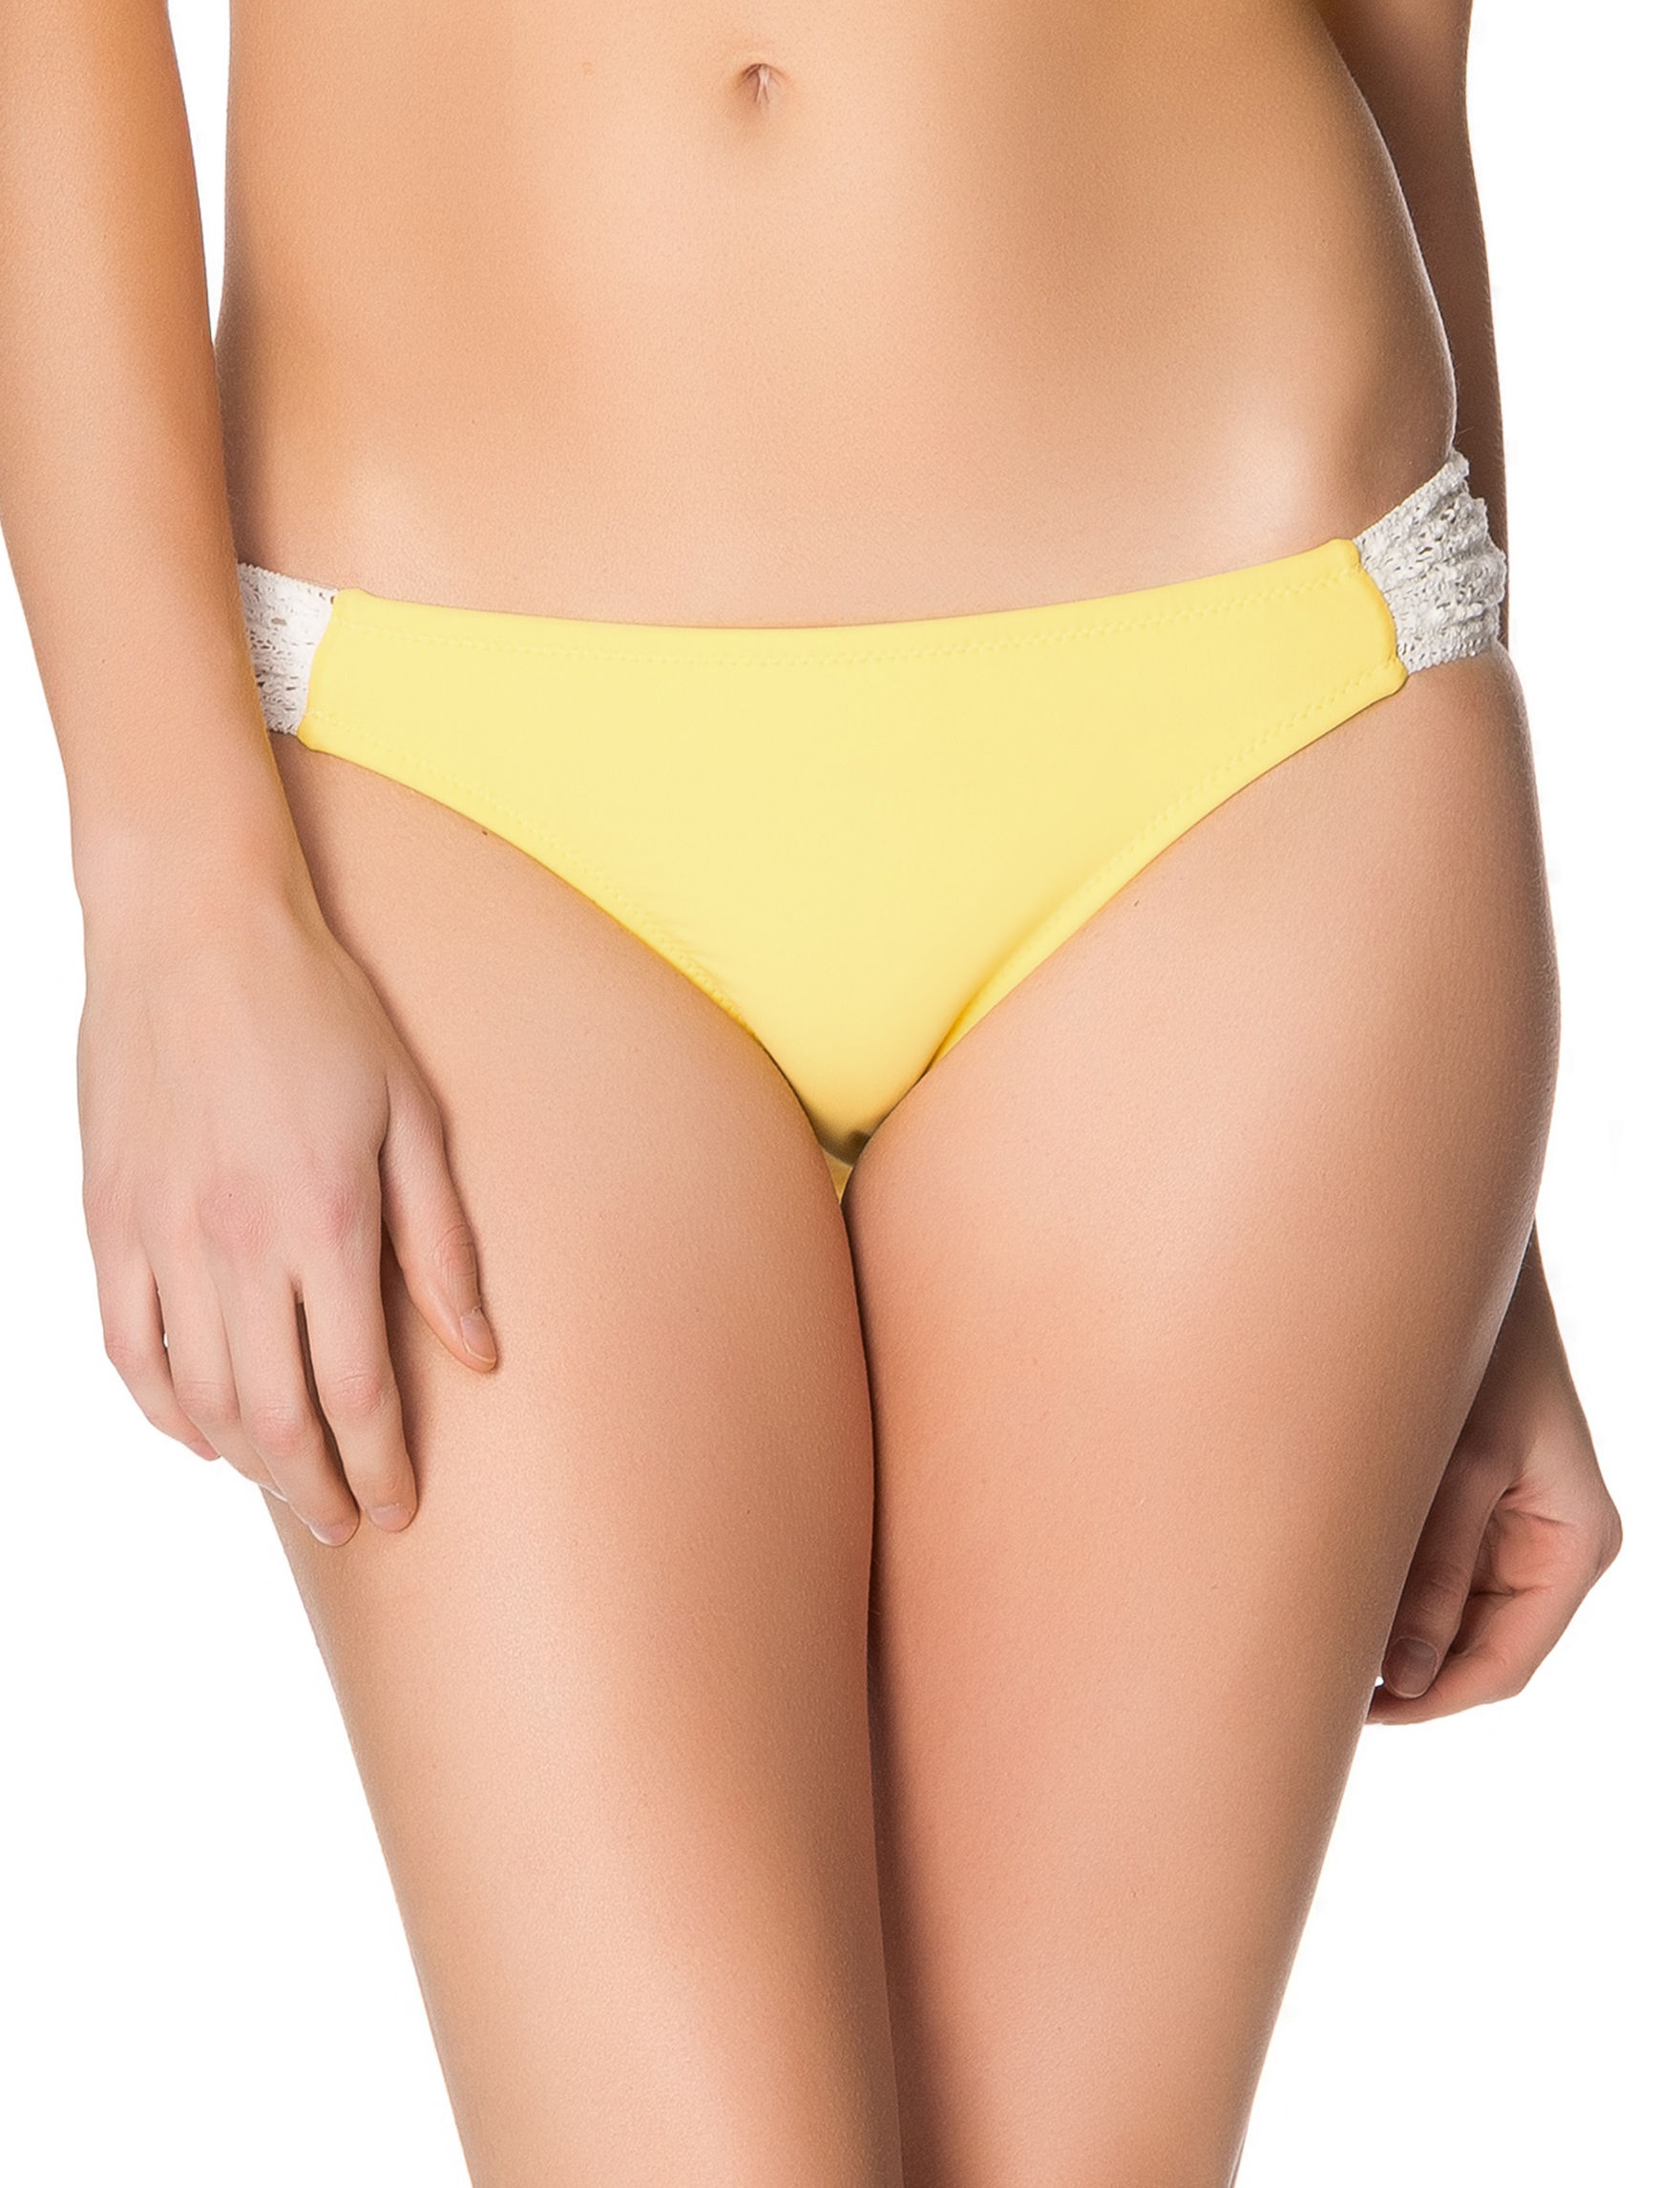 Jessica Simpson Yellow Swimsuit Bottoms Bikini